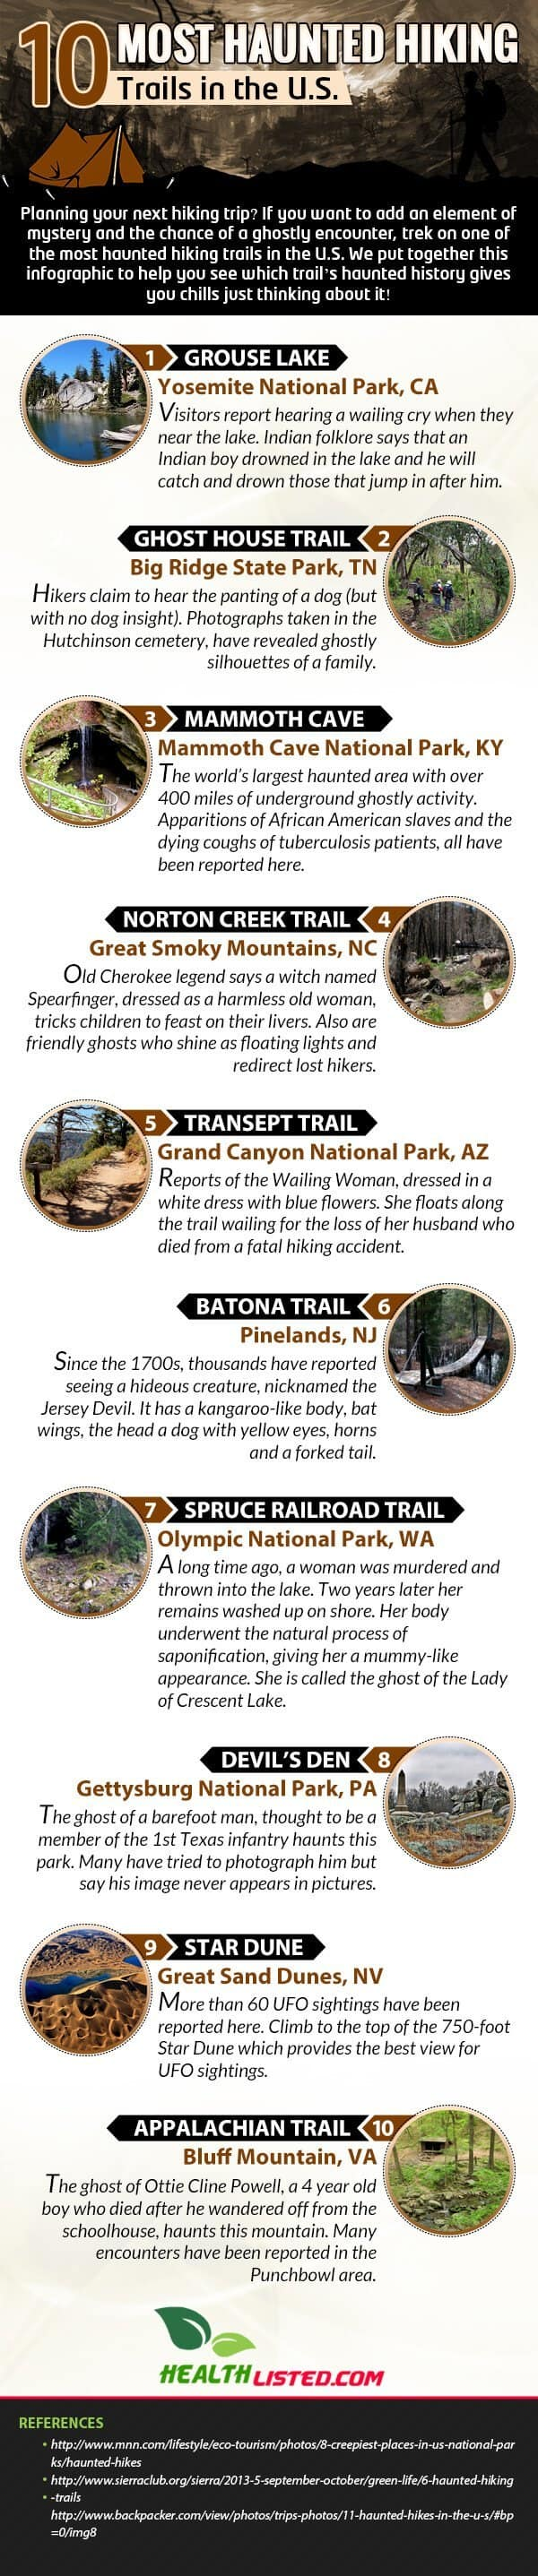 10 Most Haunted Hiking Trails in the U.S.